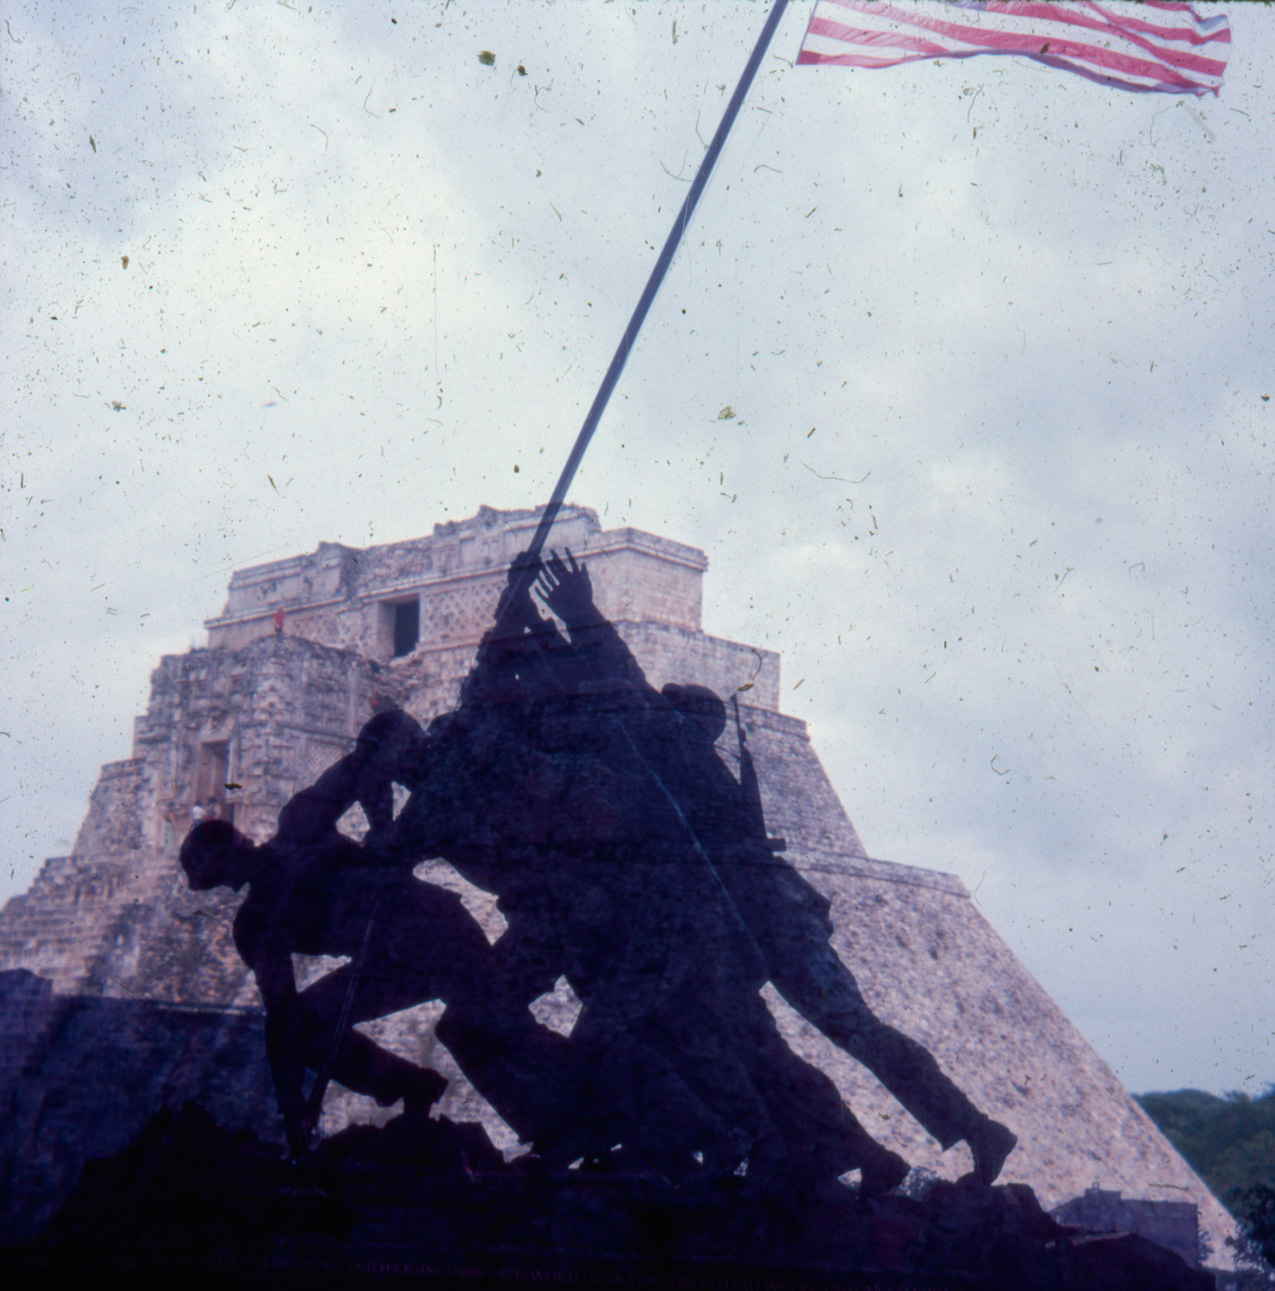 double-exposure photo featuring silhouetted Iwo Jima Memorial and ancient pyramids